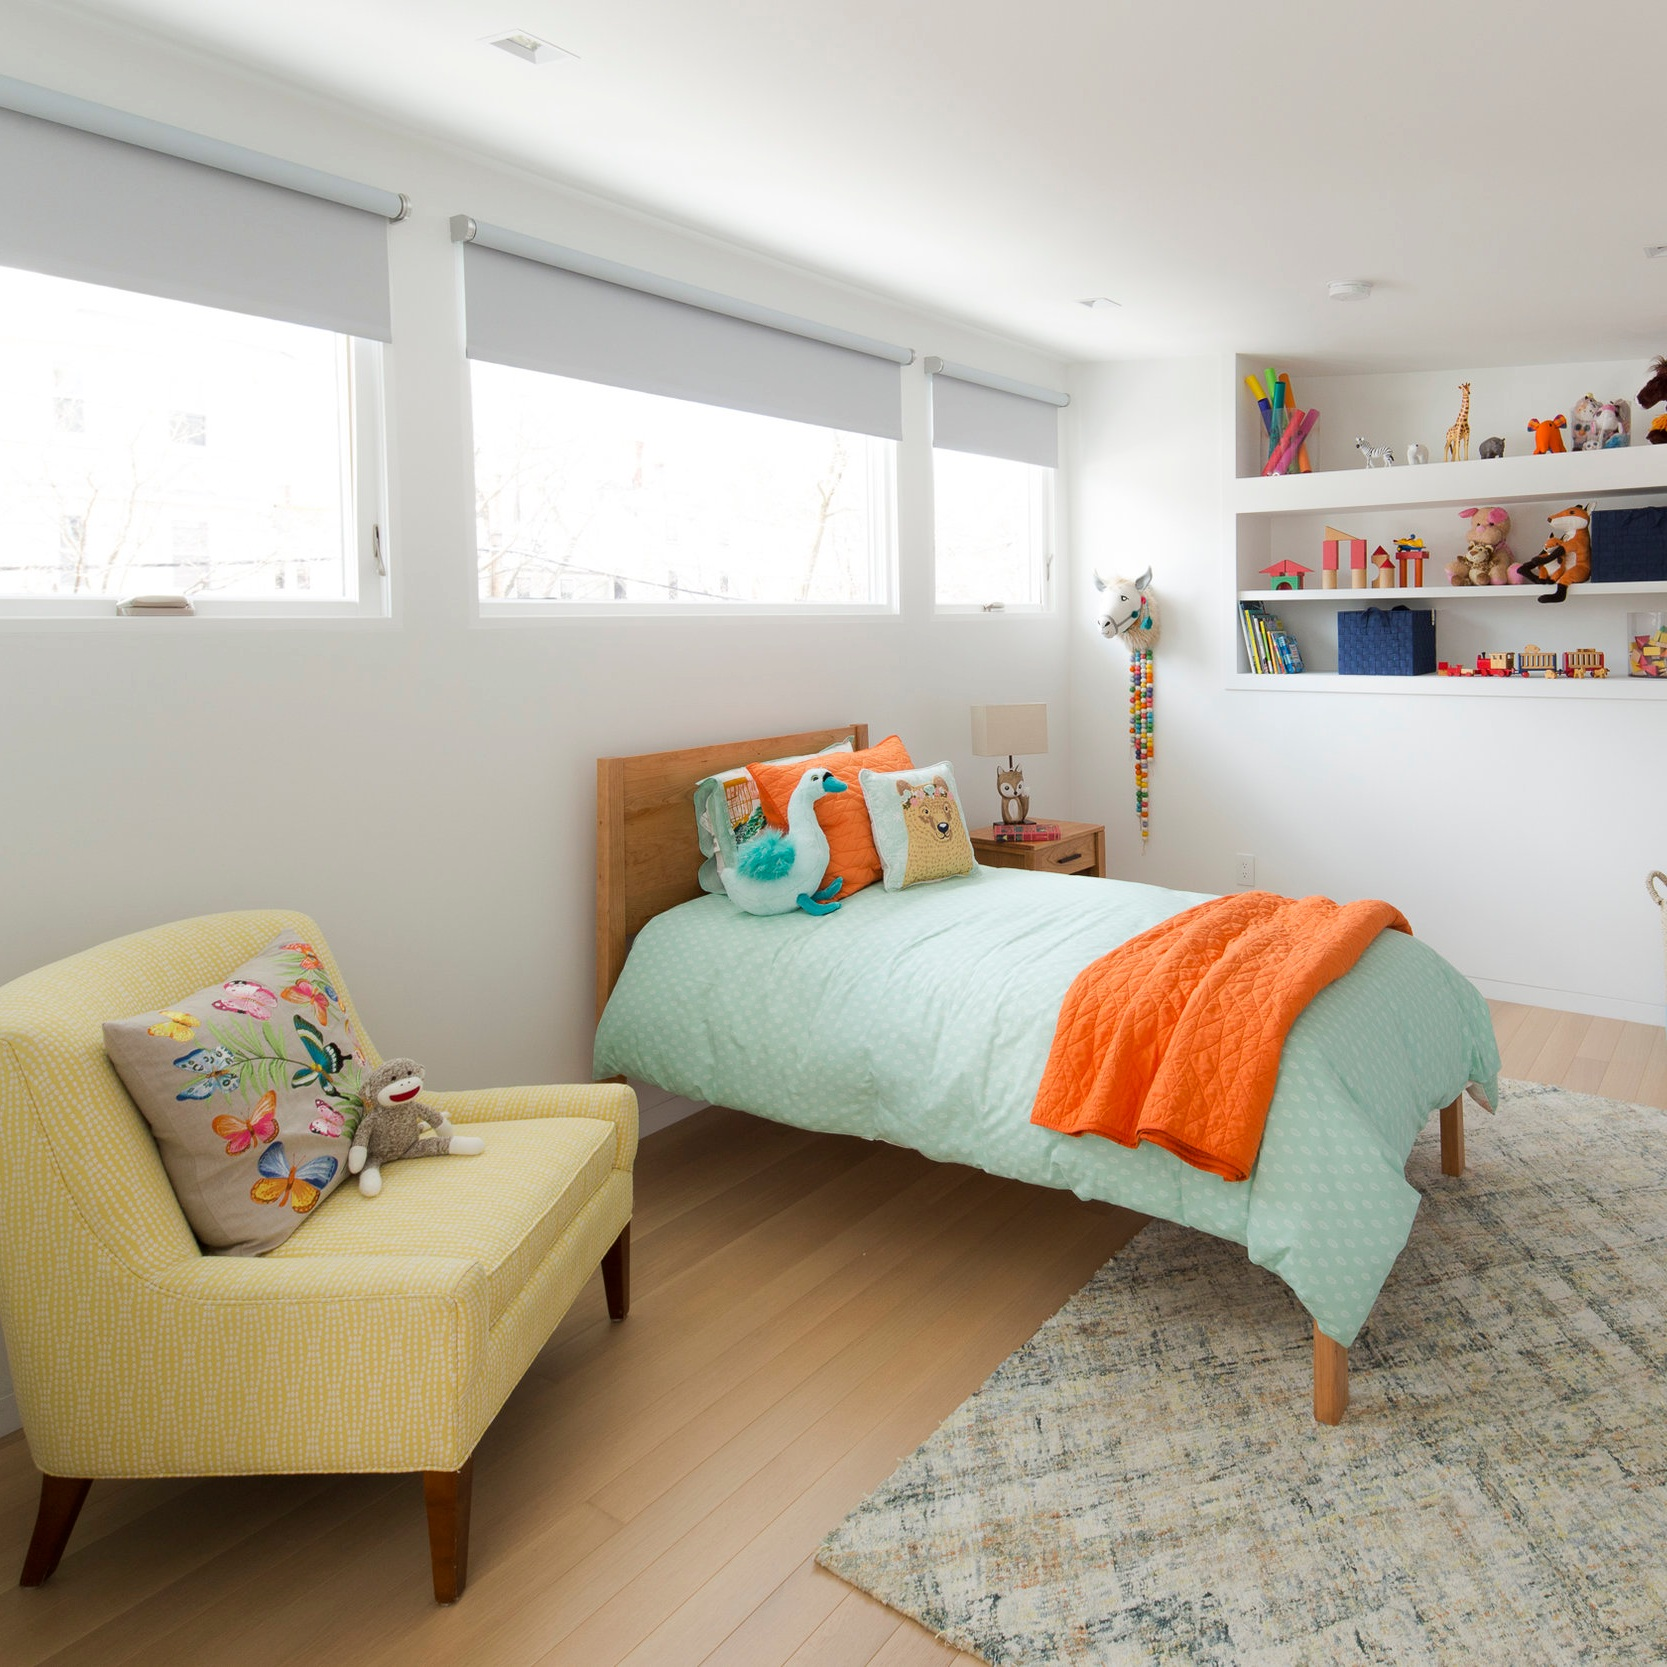 Blackout fabric provides total privacy, reduces solar heat gain, and blocks light for a room darkening effect. -